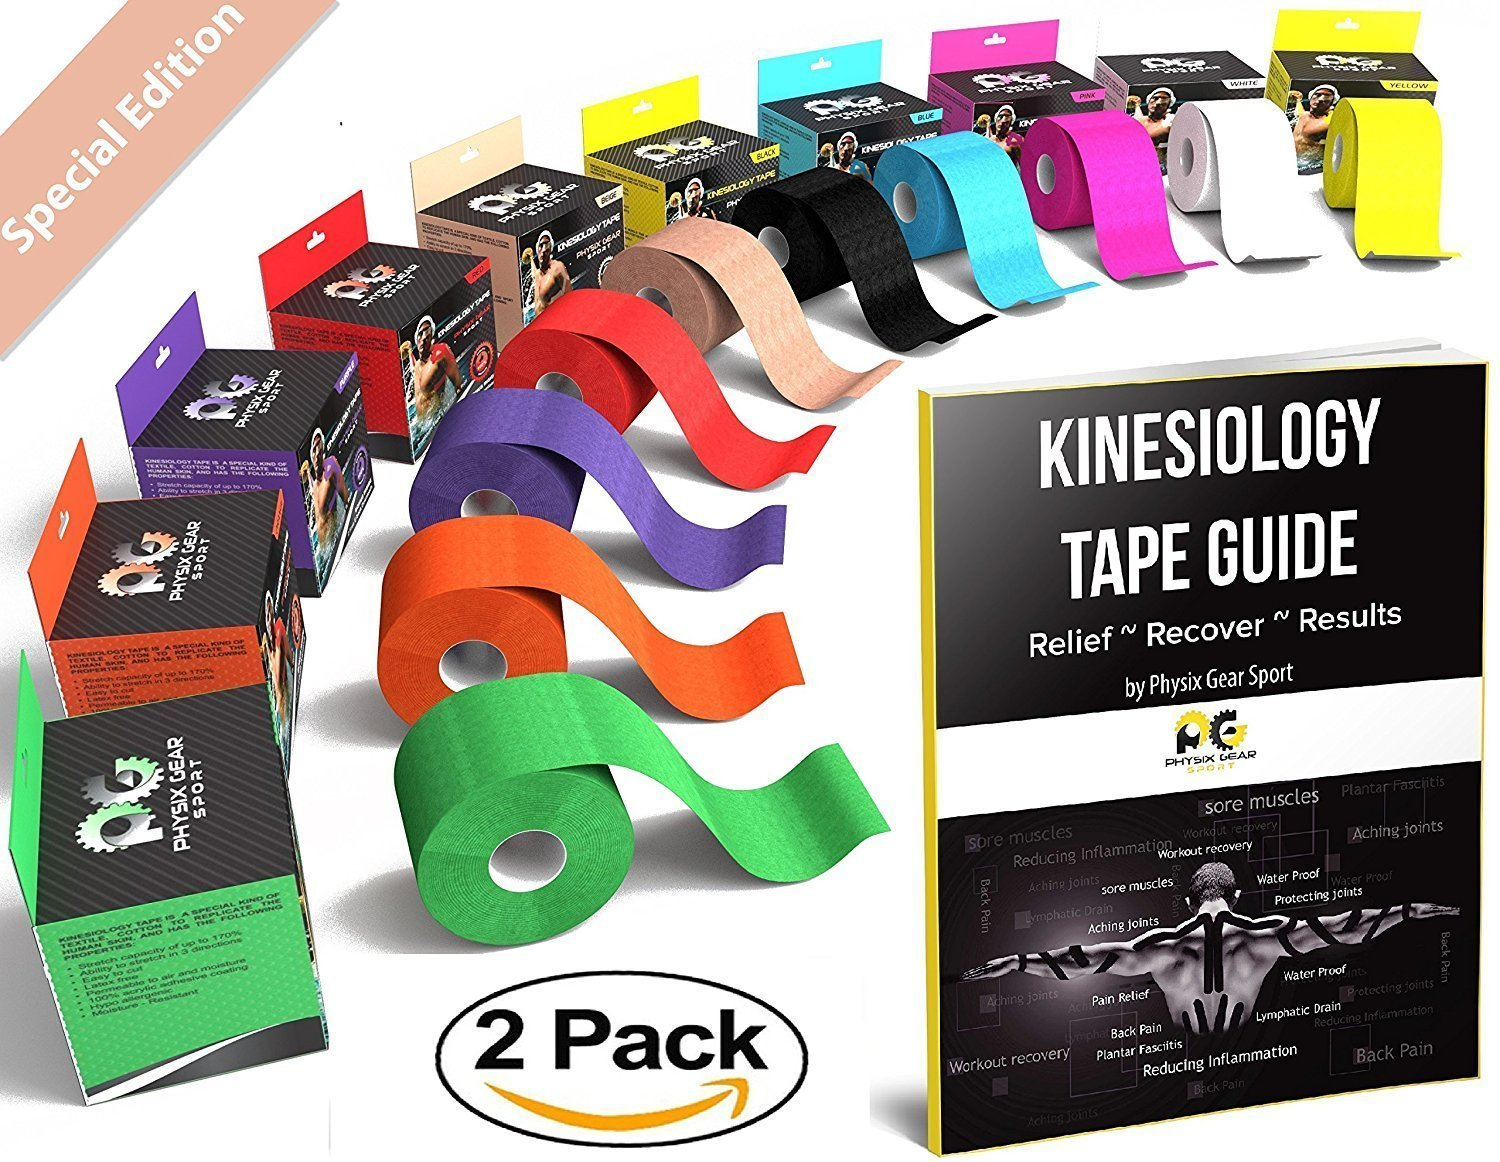 Physix Gear Sport Kinesiology Tape (2 Pack or 1 Pack) by, Best Waterproof Muscle Support Adhesive, 2in x 16.4ft Roll Uncut, Physio Therapeutic Aid for Injury Recovery, Free 82pg E-Guide -BEIGE 2 PACK by Physix Gear Sport